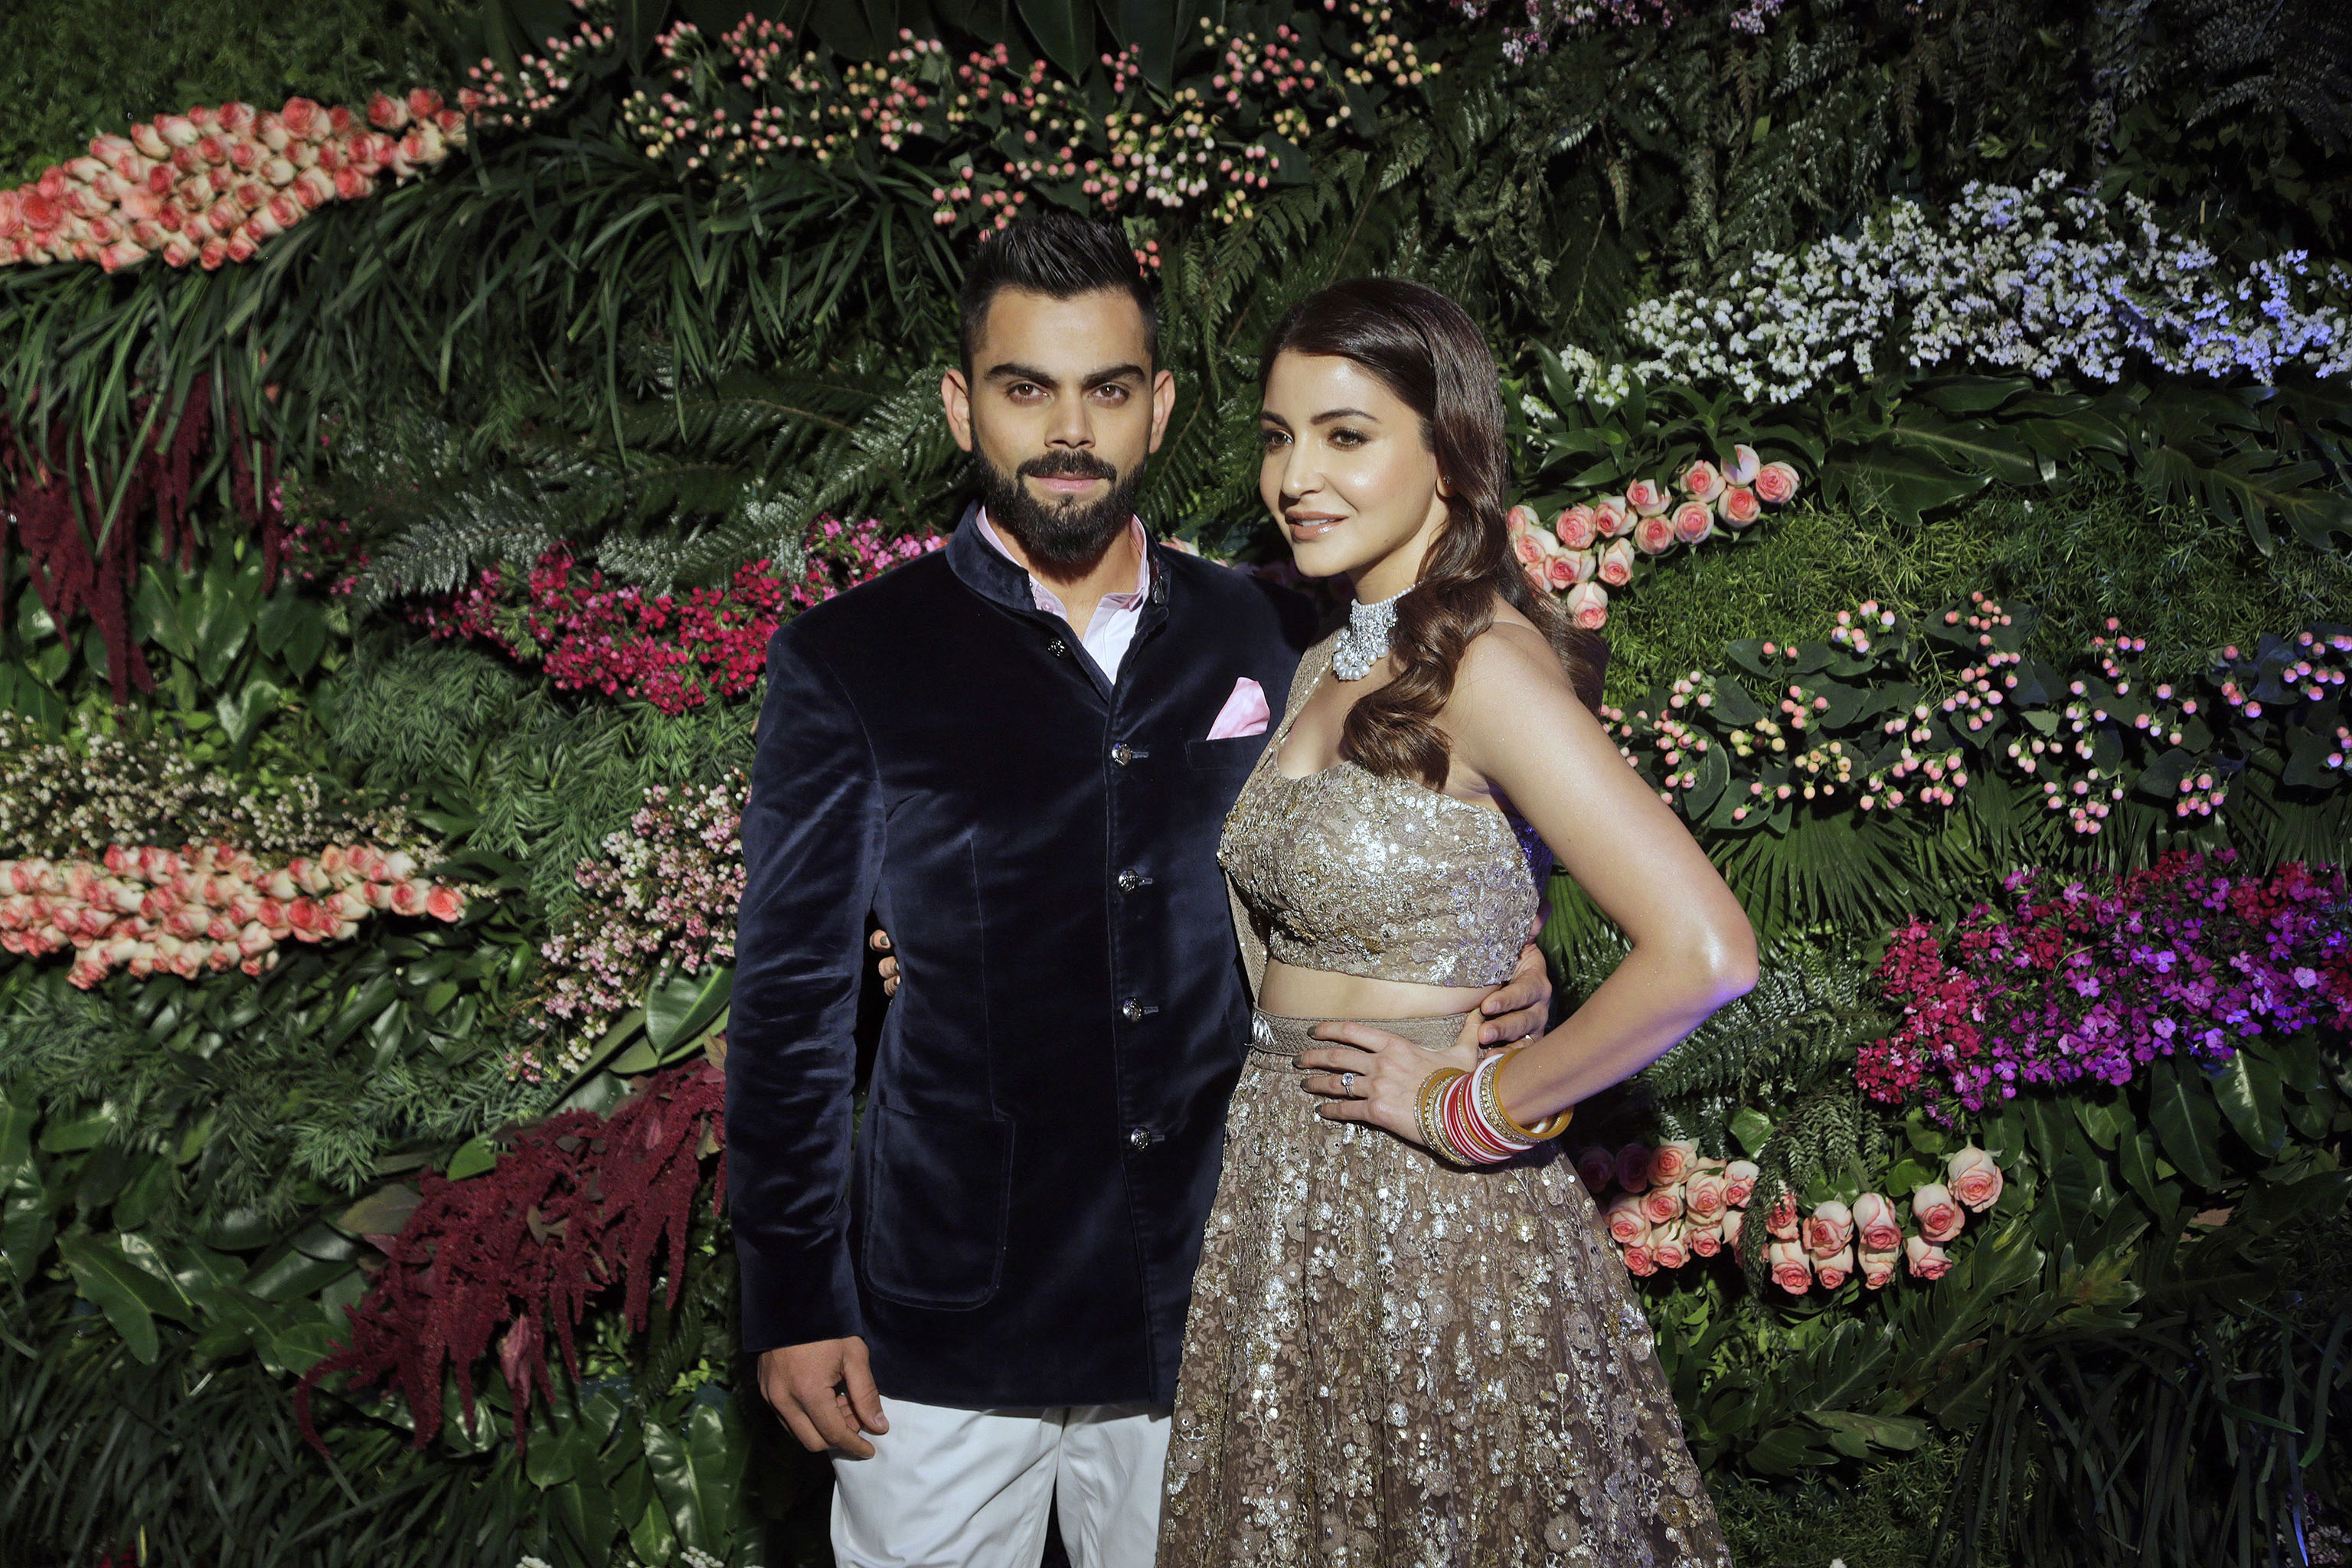 Indian cricketer Virat Kohli, left, and Bollywood actress Anushka Sharma, pose for the photographers during their wedding reception in Mumbai, India, . The couple got married at a heritage resort in the Italian countryside of Tuscany on Dec.11Bollywood, Mumbai, India - 26 Dec 2017